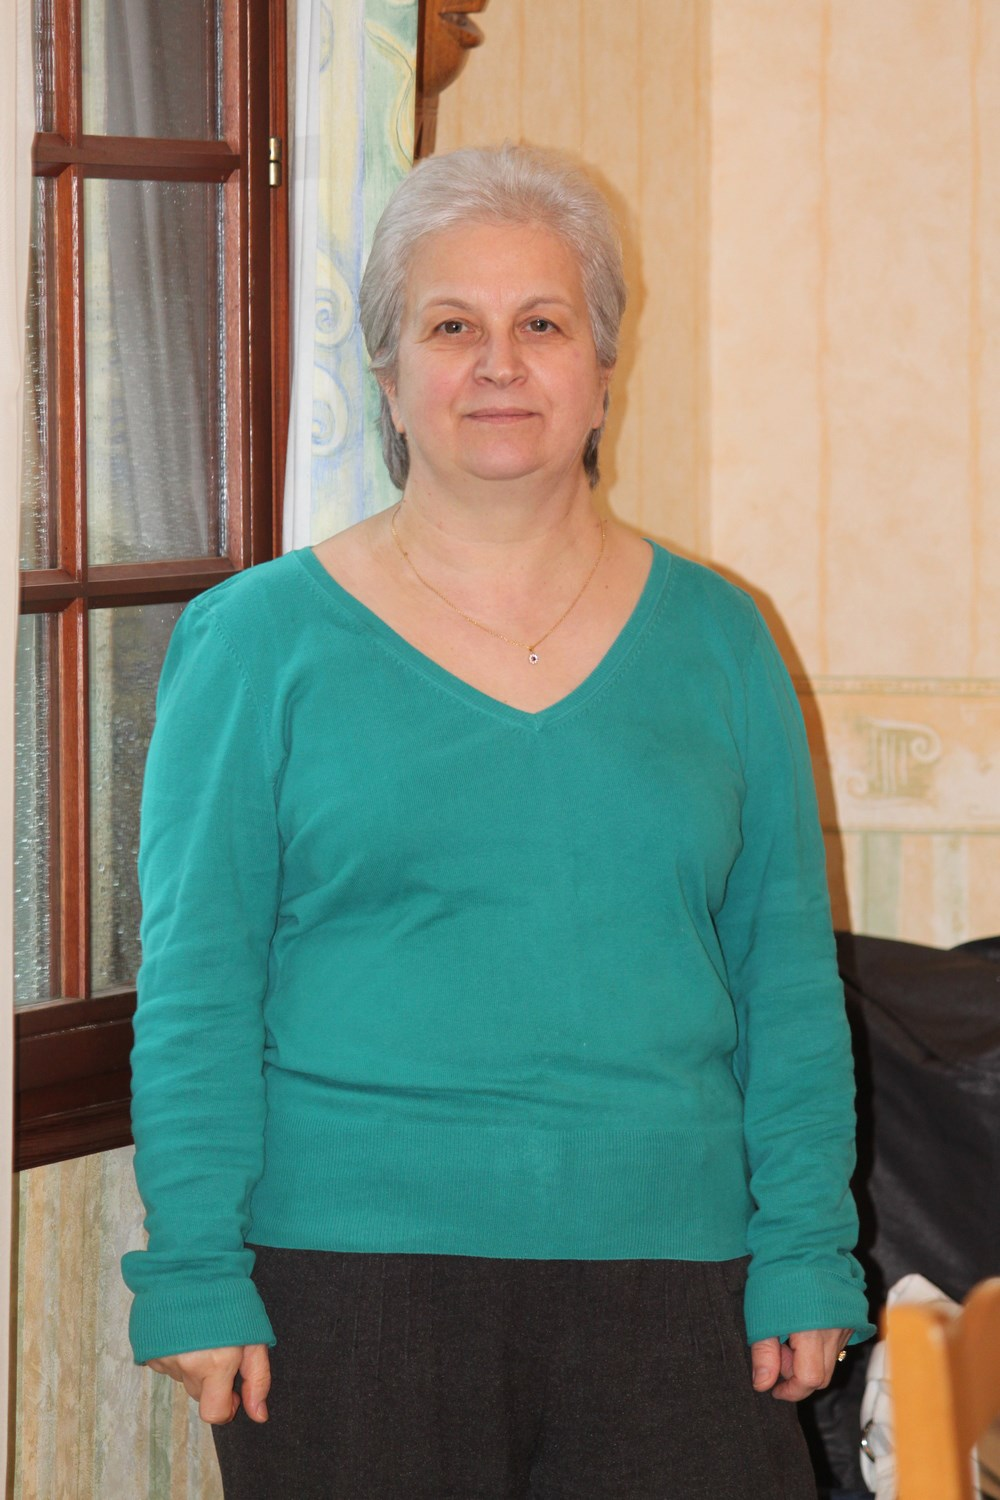 Relooking  Complet - Relooking Complet - Danielle - 55 ans - Niort - 55 ans - Niort